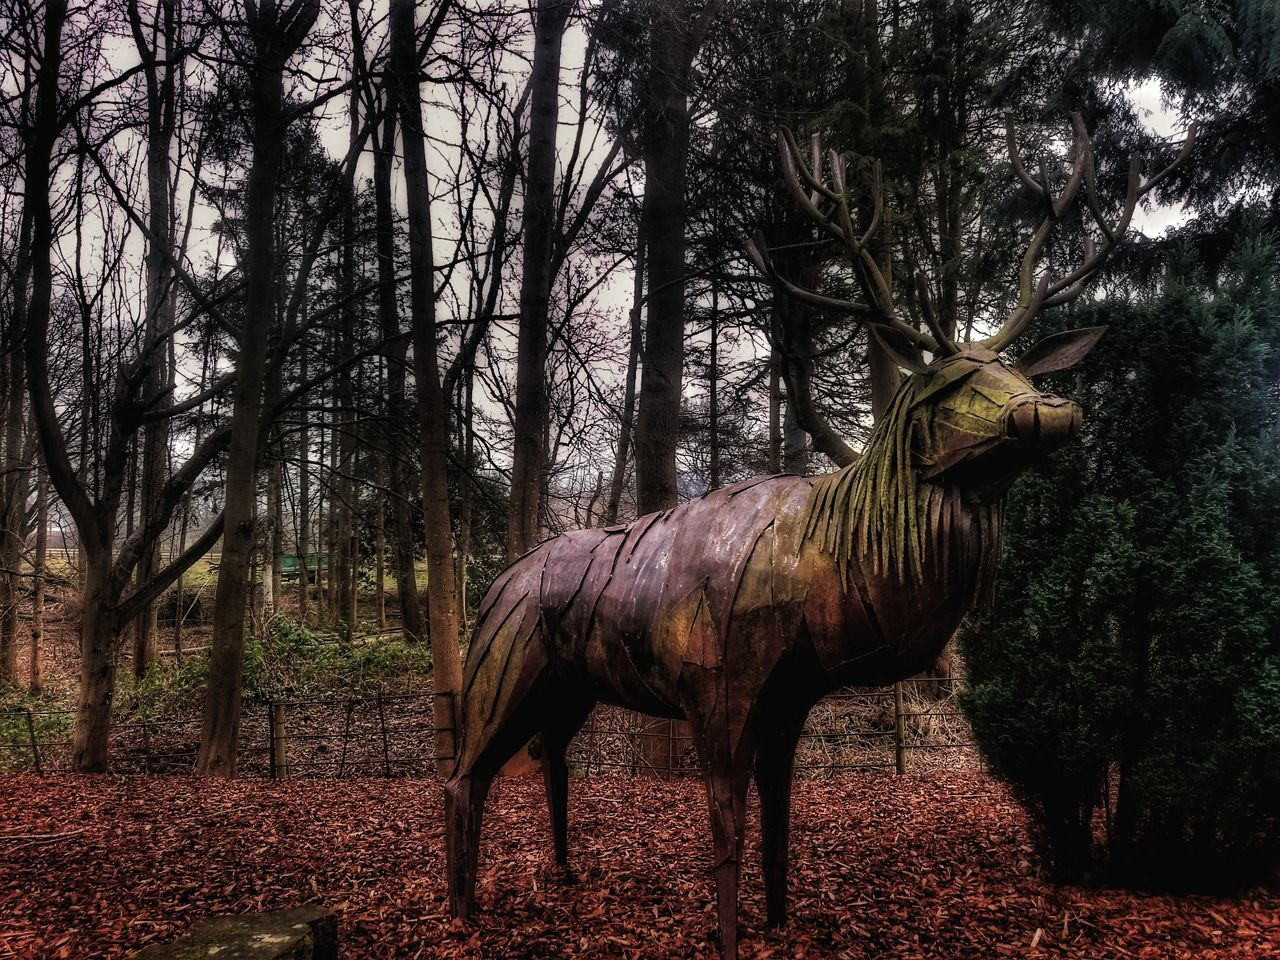 Animal Themes No People Outdoors Hdr_pics Iron - Metal Statue Welding Work Sculpture Mastery Hdr_Collection Man Made Object Stag Design Deer Hdrphotography Softness Soft Glow Soft Glow Through Trees Sony Experia Z3 Hdroftheday Built Structure Amazing